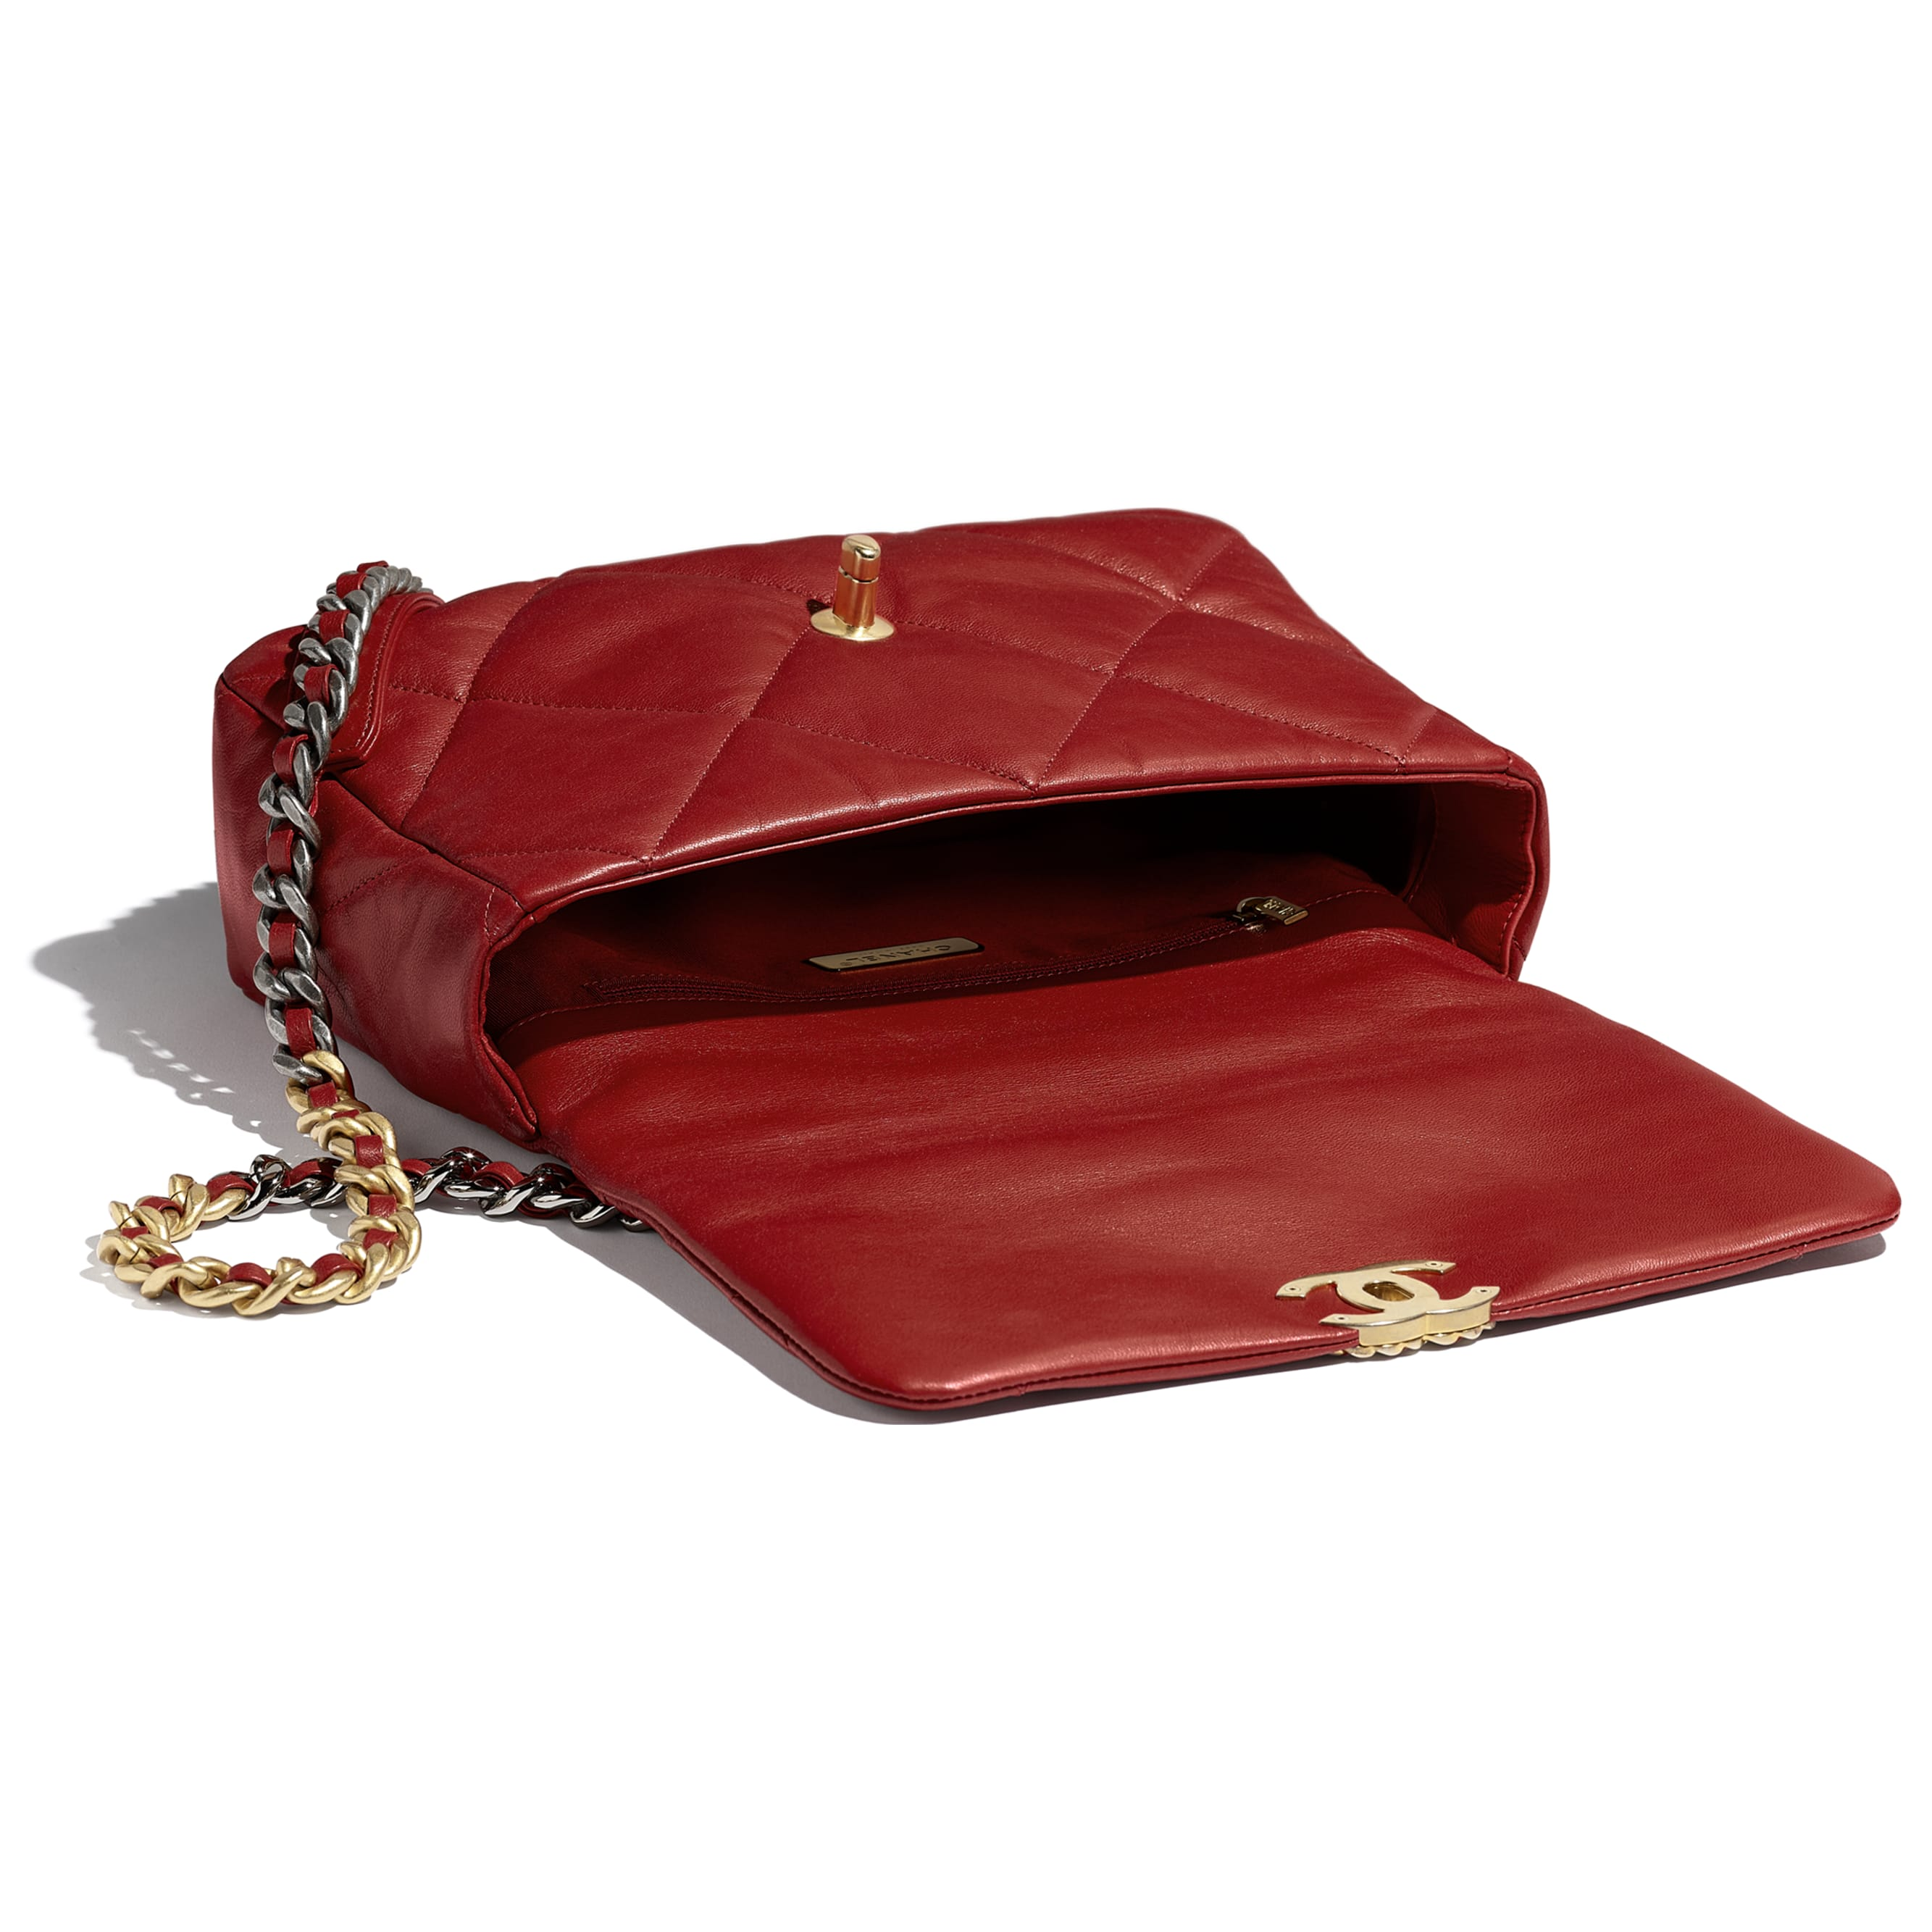 CHANEL 19 Large Flap Bag - Red - Goatskin, Gold-Tone, Silver-Tone & Ruthenium-Finish Metal - Other view - see standard sized version